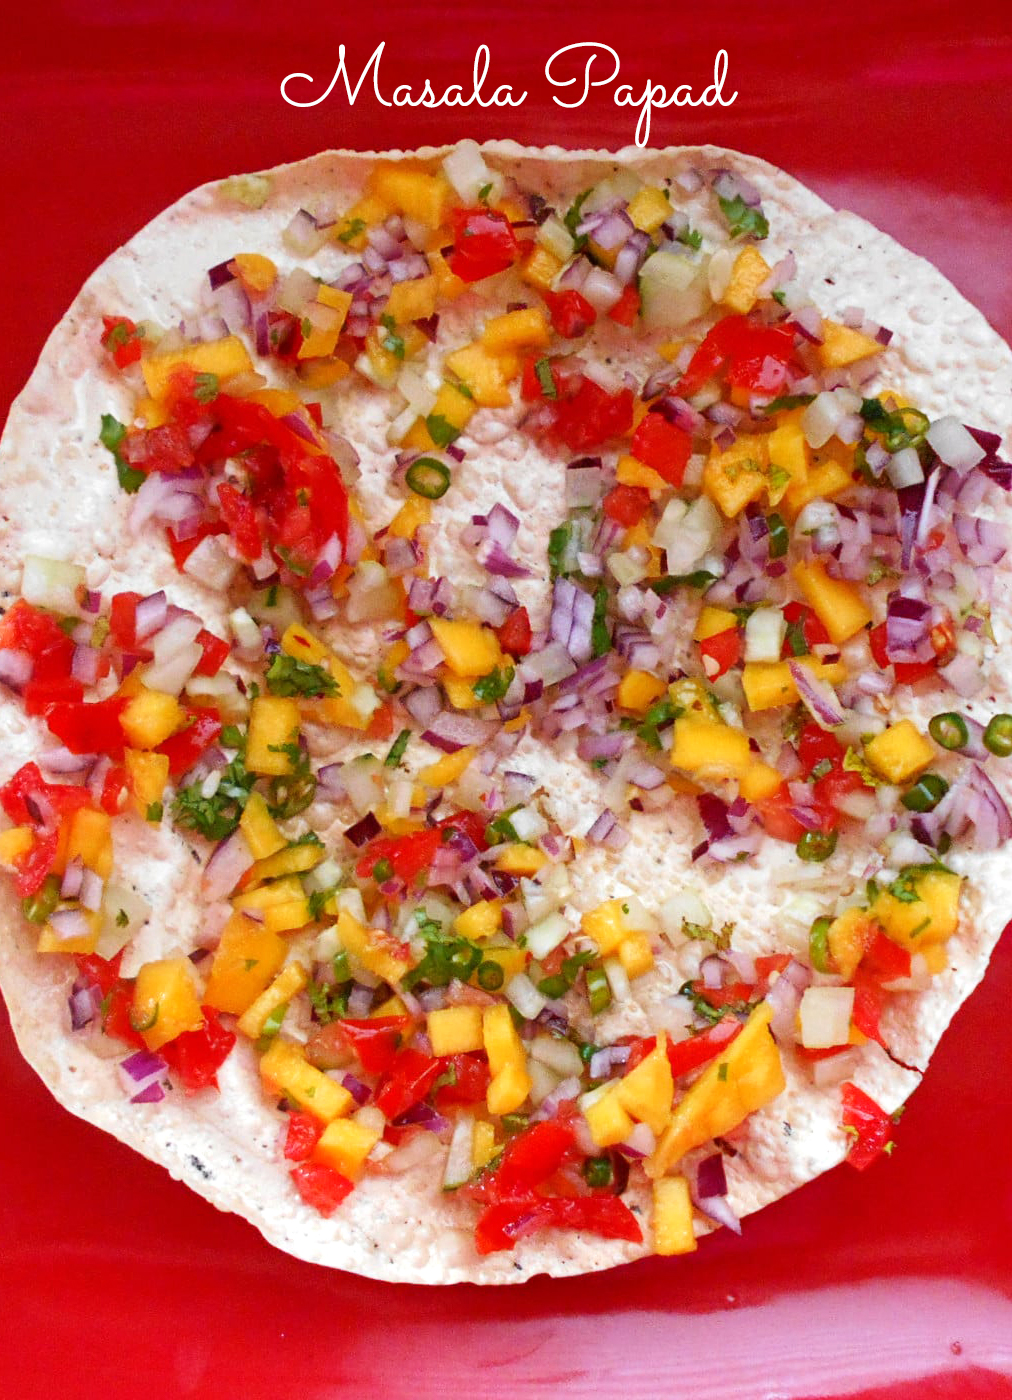 Closeup View of A Square Red Plate with Papad Cut into Quarters and Topped with Mango, onions and Red Peppers